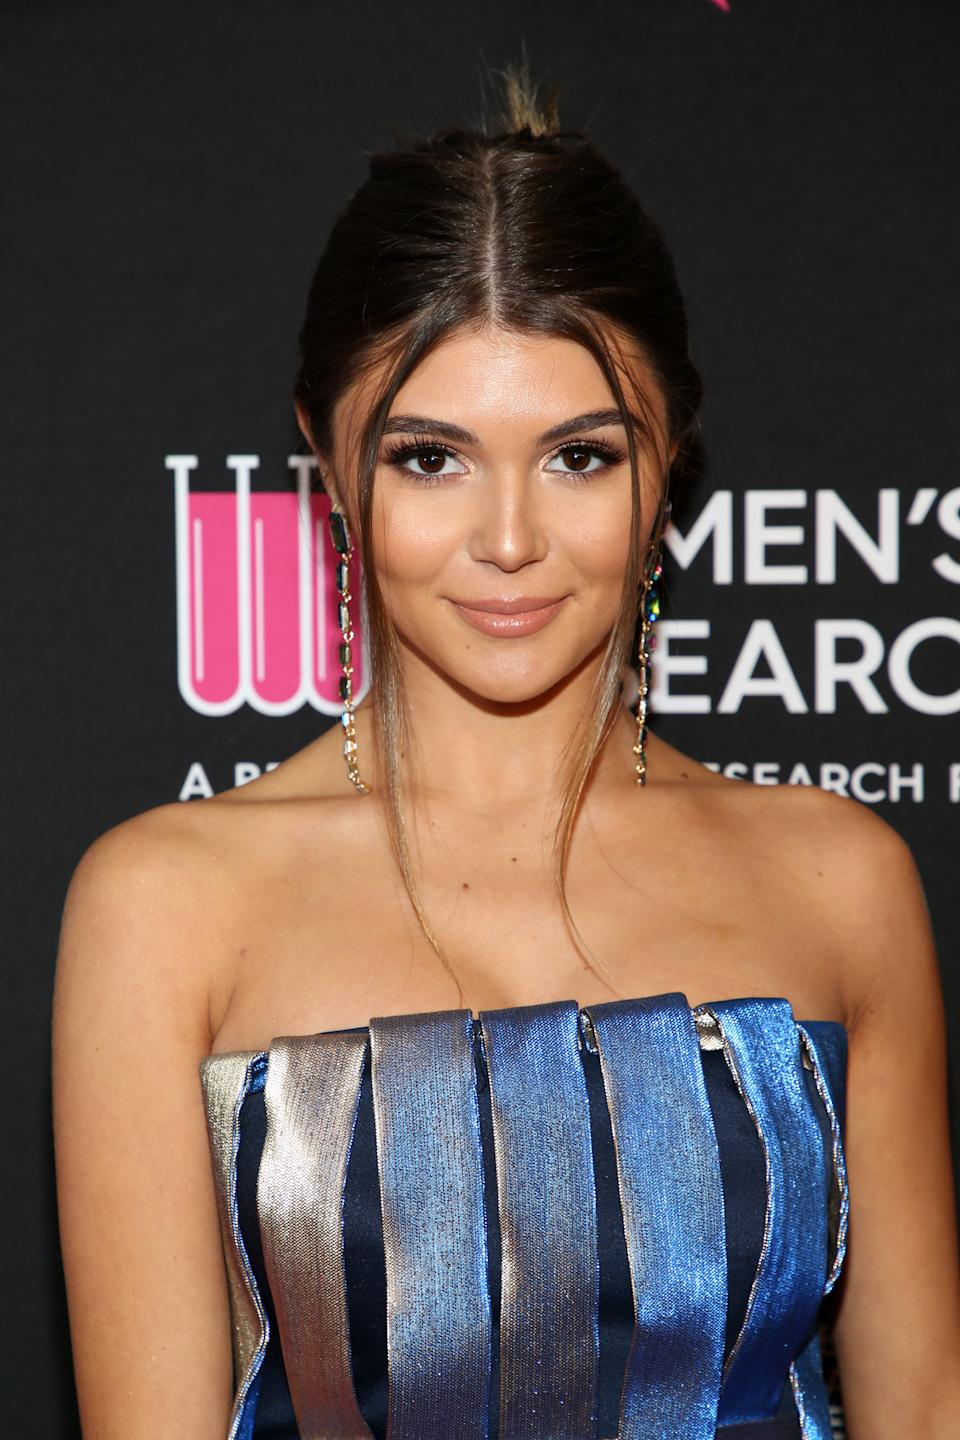 Olivia Jade Giannulli returns to YouTube after college admissions scandal. (Photo: Getty Images)